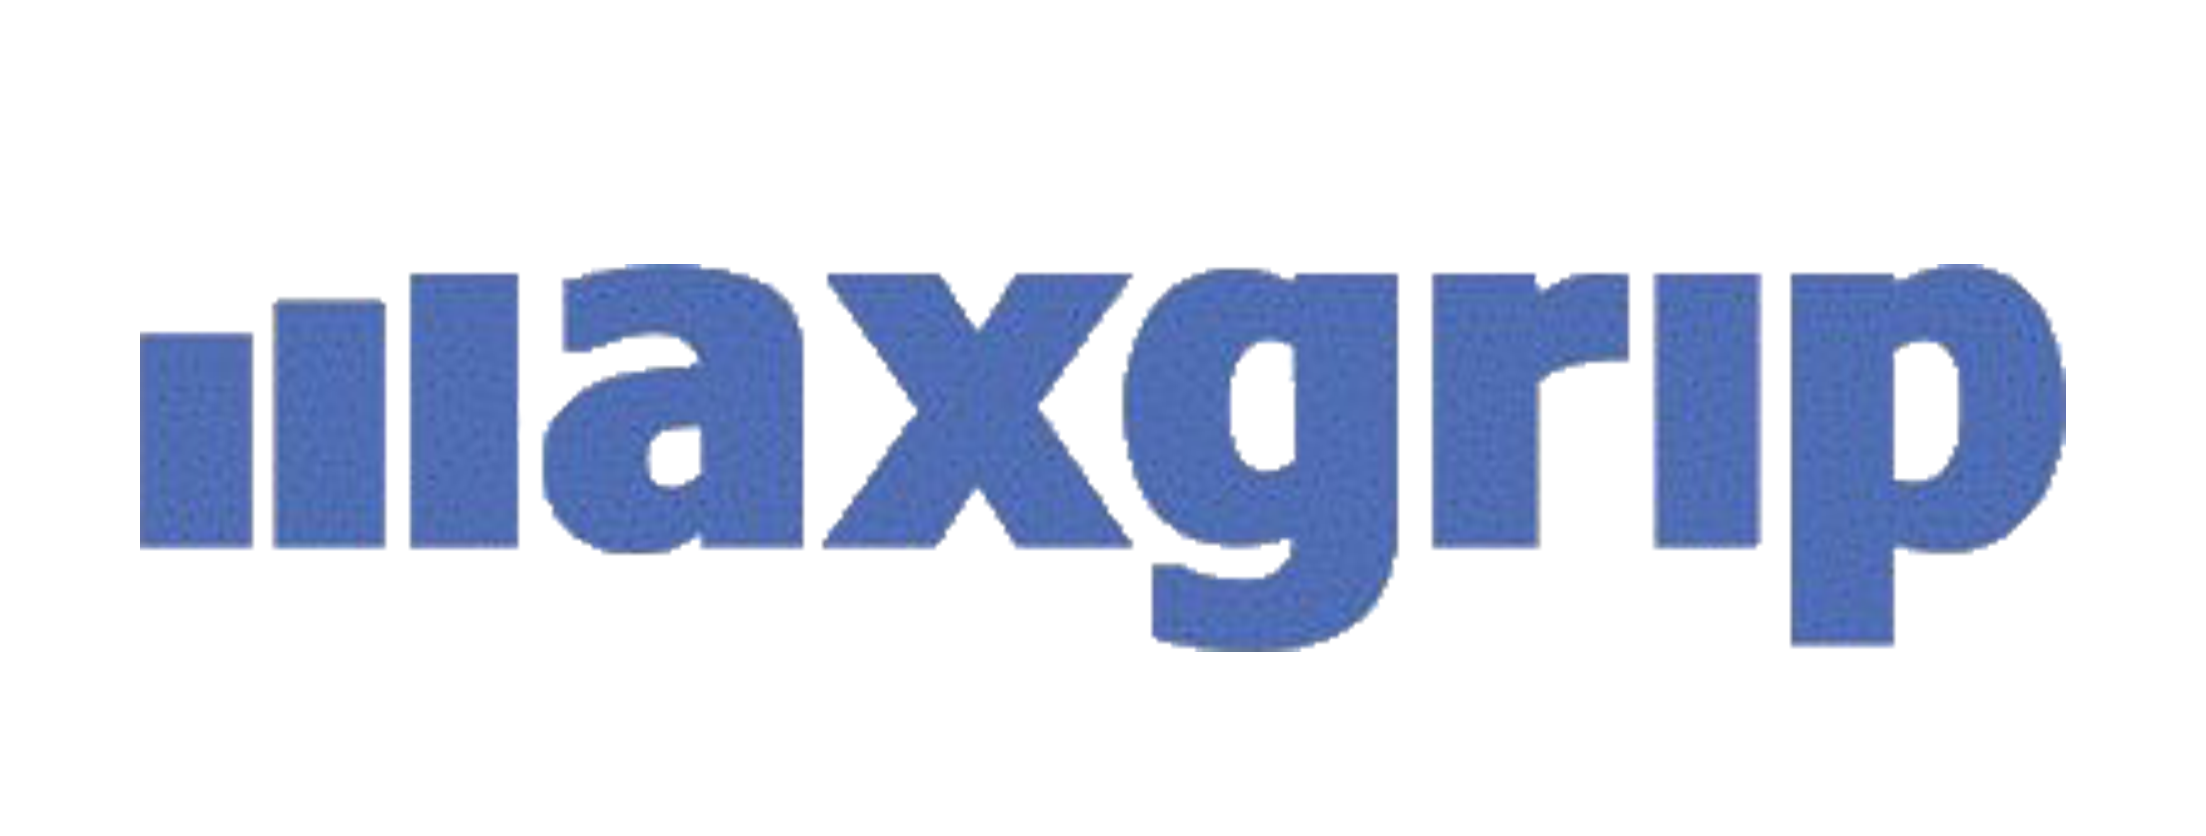 https://allyourbi.nl/wp-content/uploads/2020/09/Maxgrip-logo.png